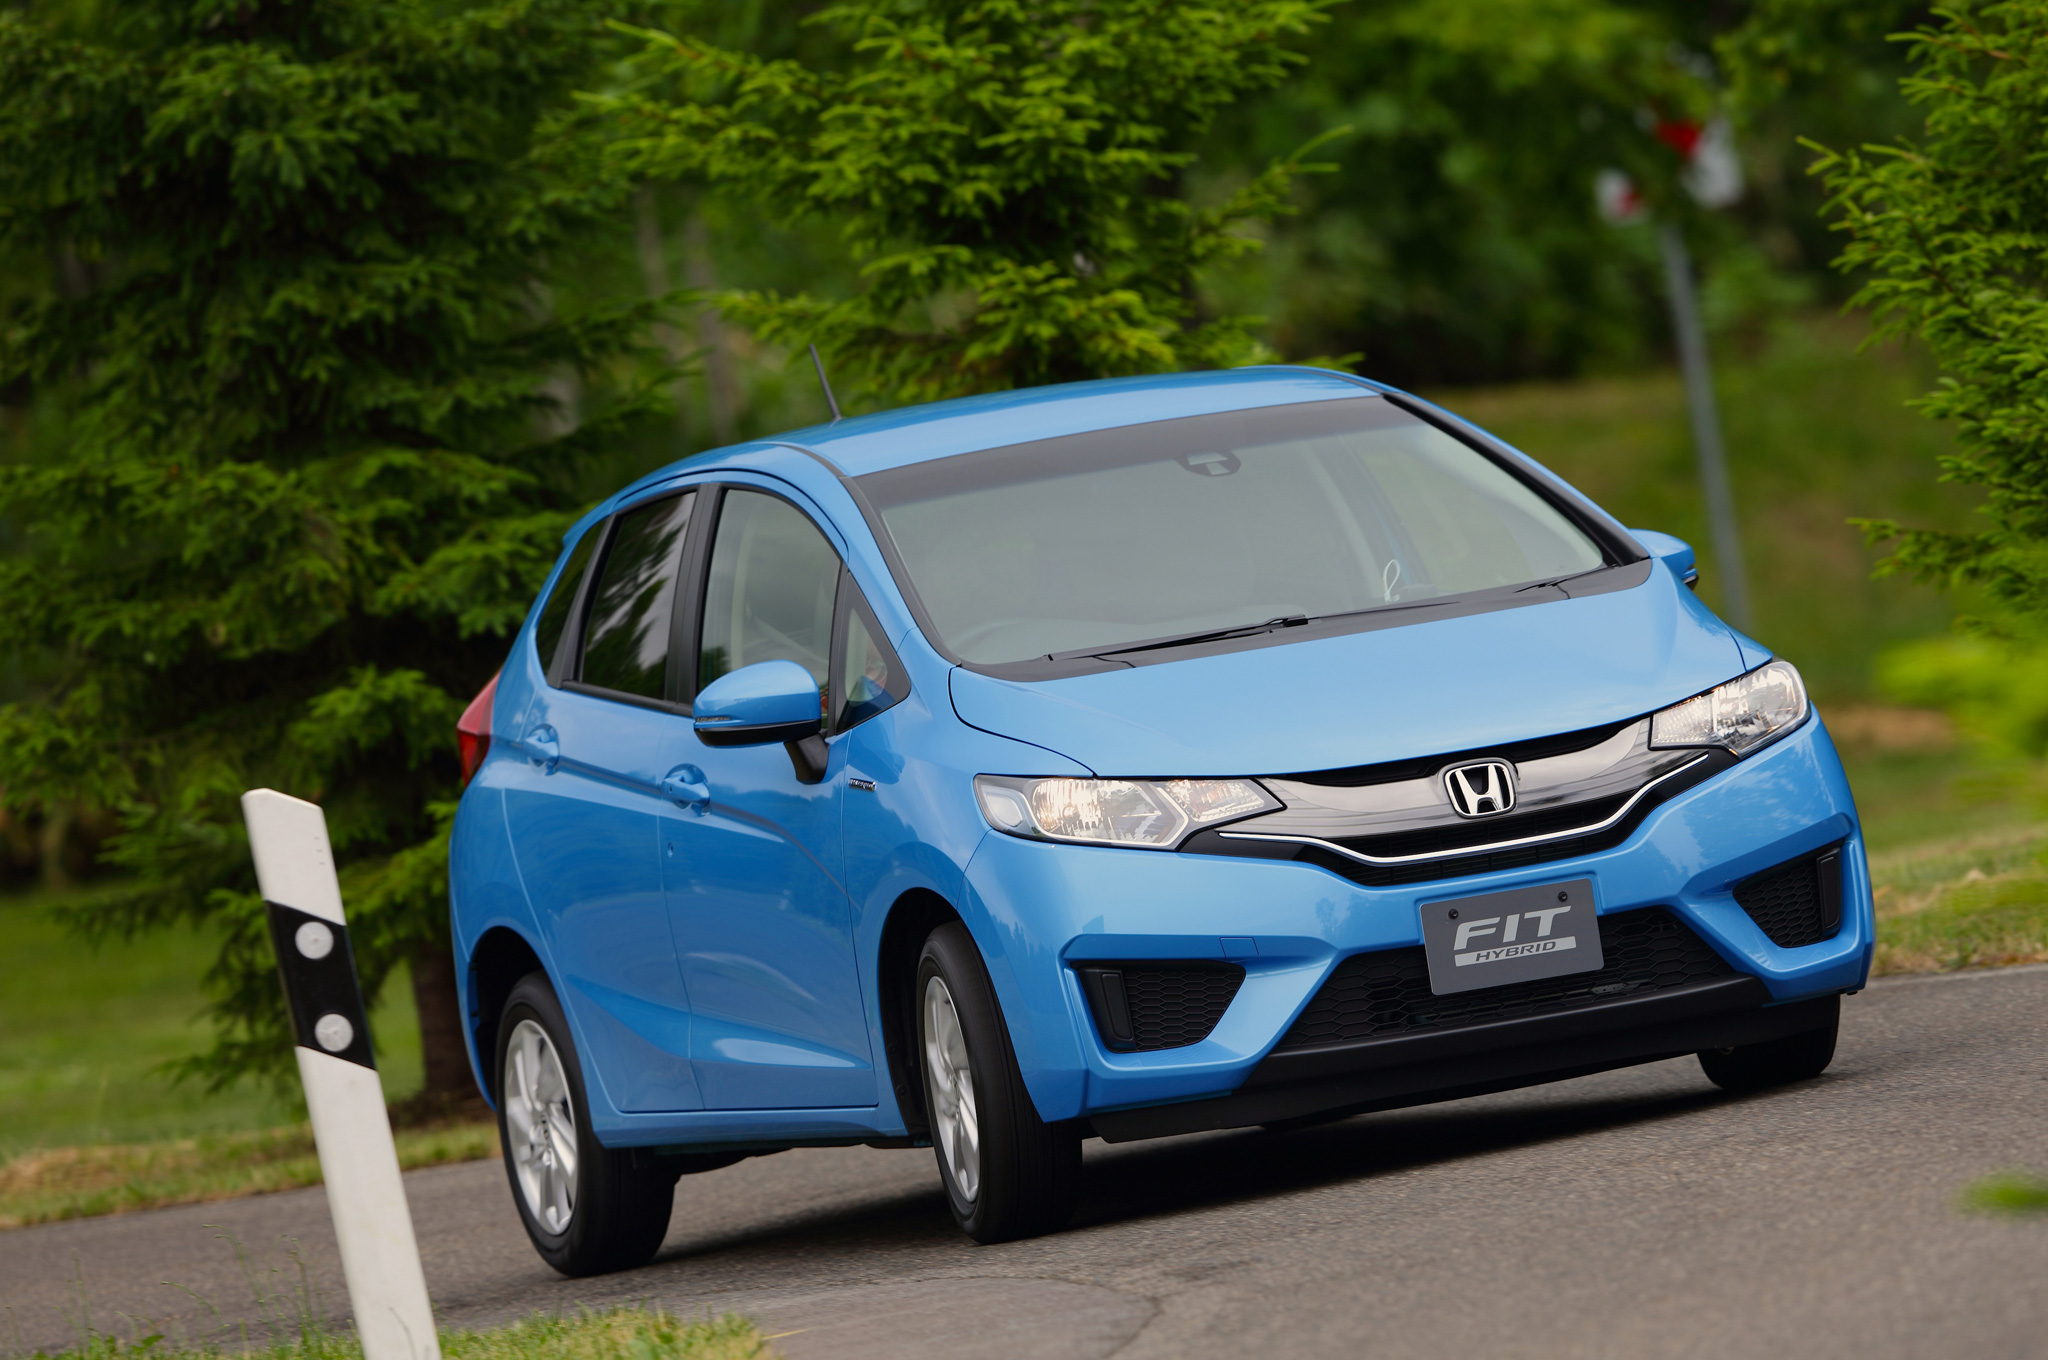 2014 Honda Jazz / 2015 Honda Fit